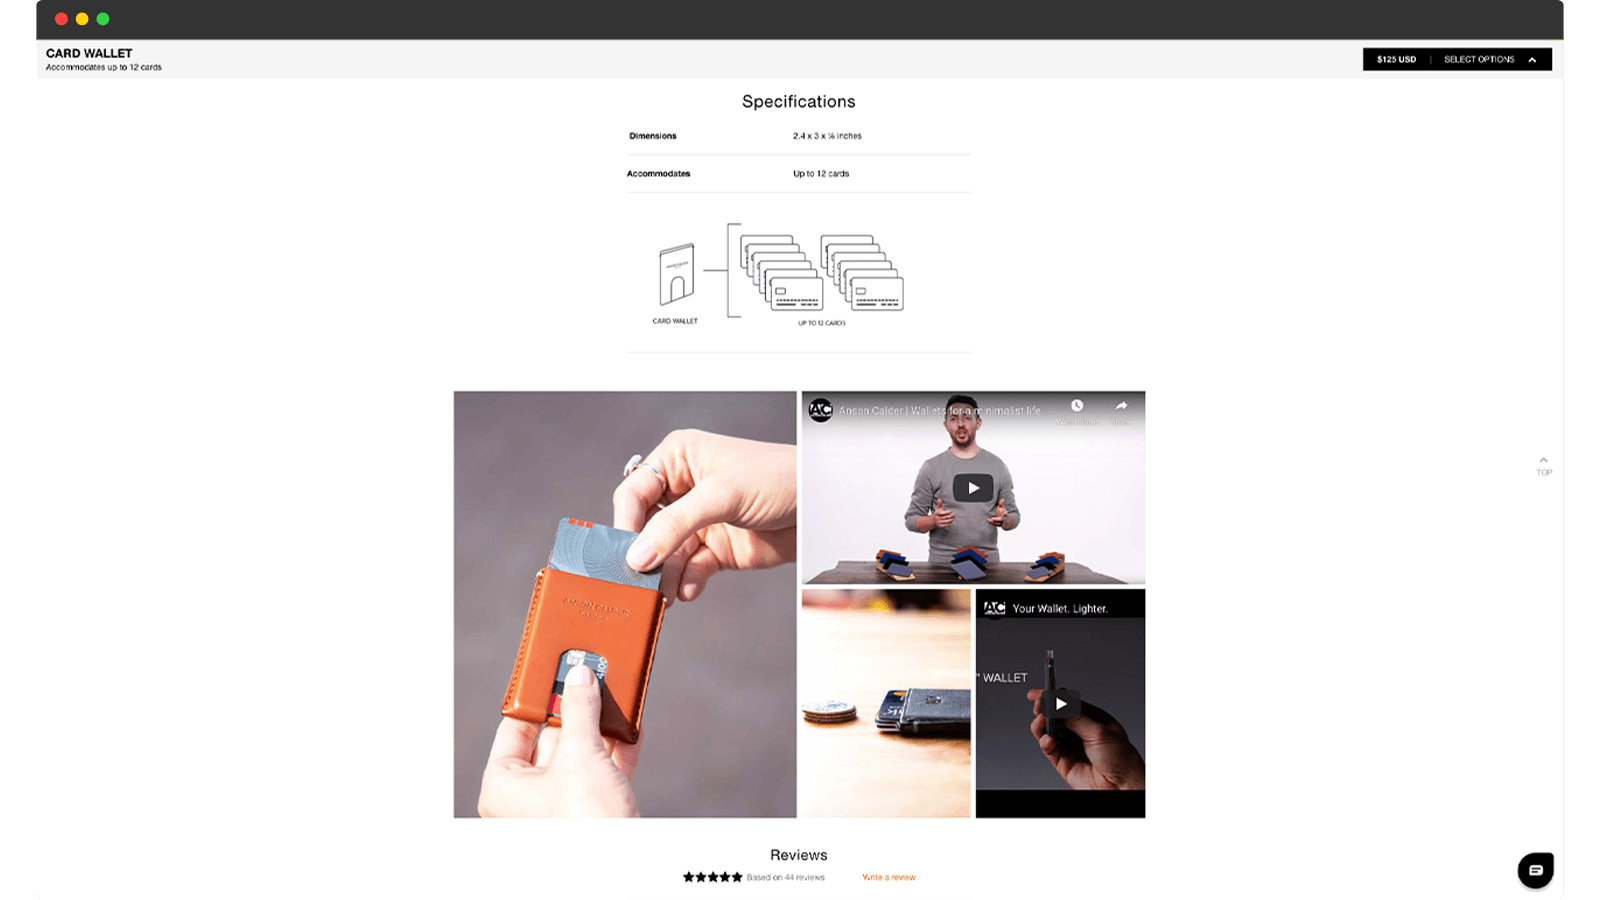 Anson Calder product page